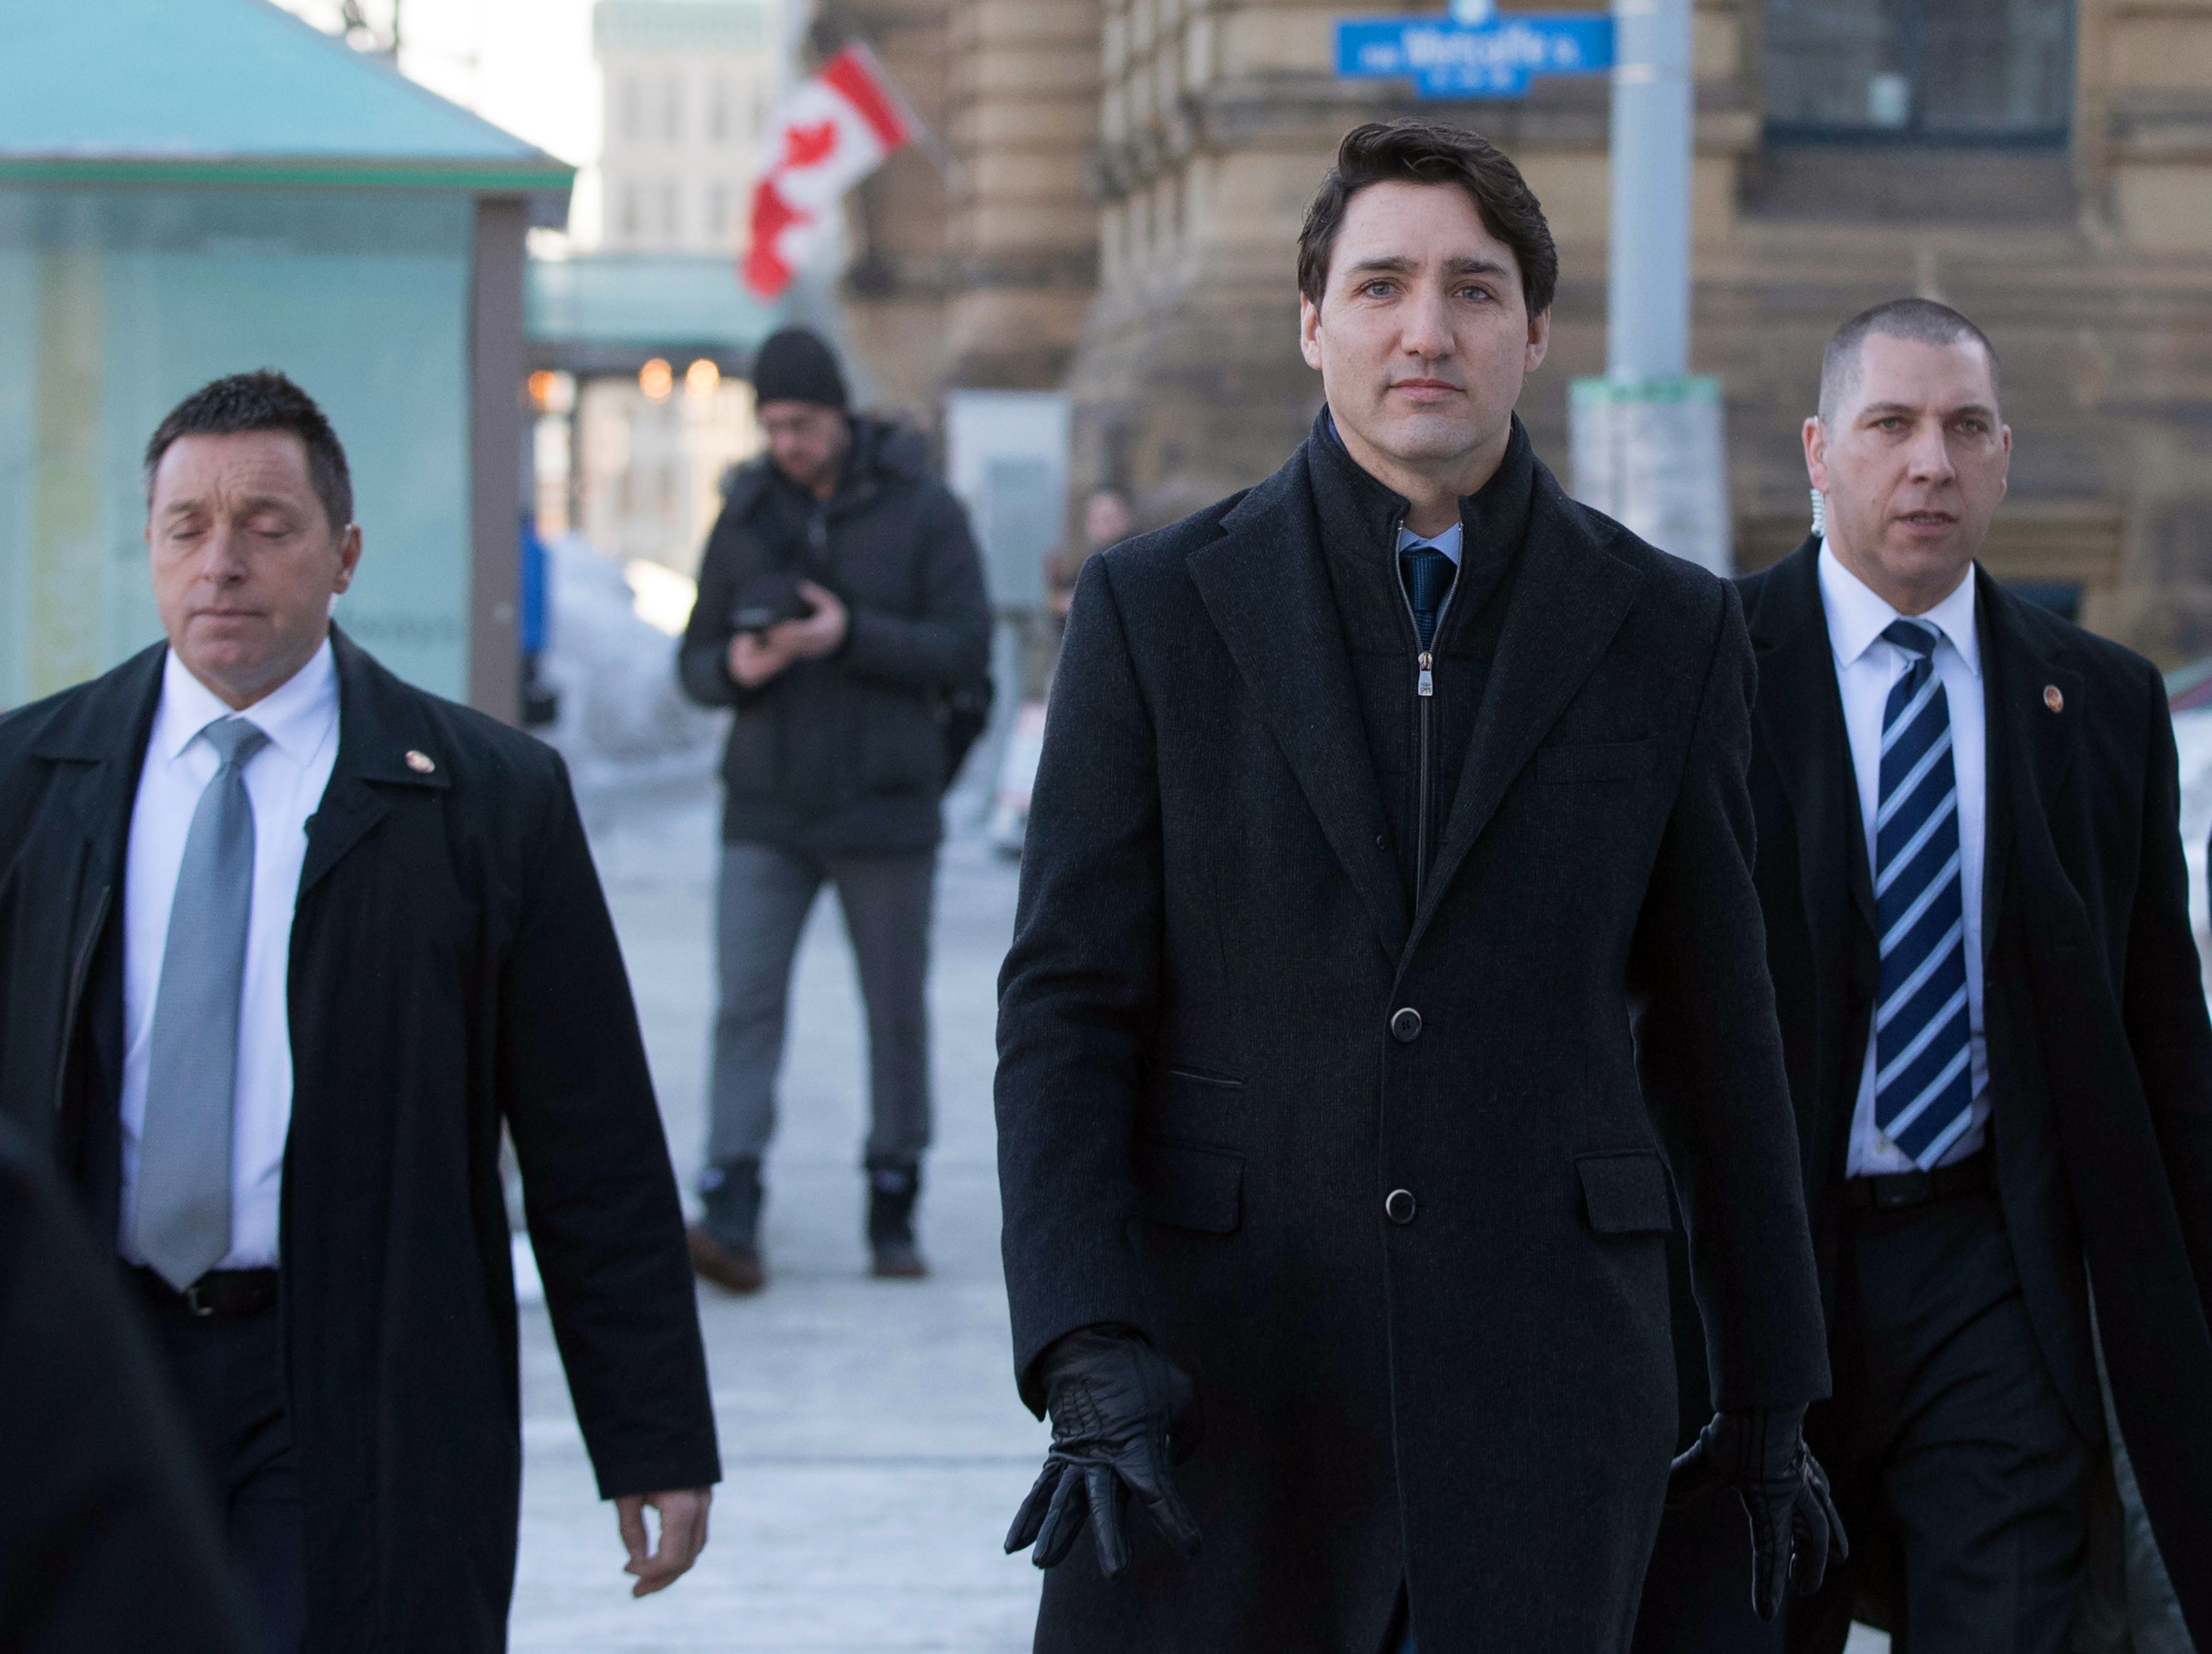 Canadian Prime Minister Justin Trudeau walks to a press conference addressing the SNC-Lavalin scandal from the Prime Minister's office in Ottawa, Ontario, on March 7, 2019. (Photo credit should read LARS HAGBERG/AFP/Getty Images)